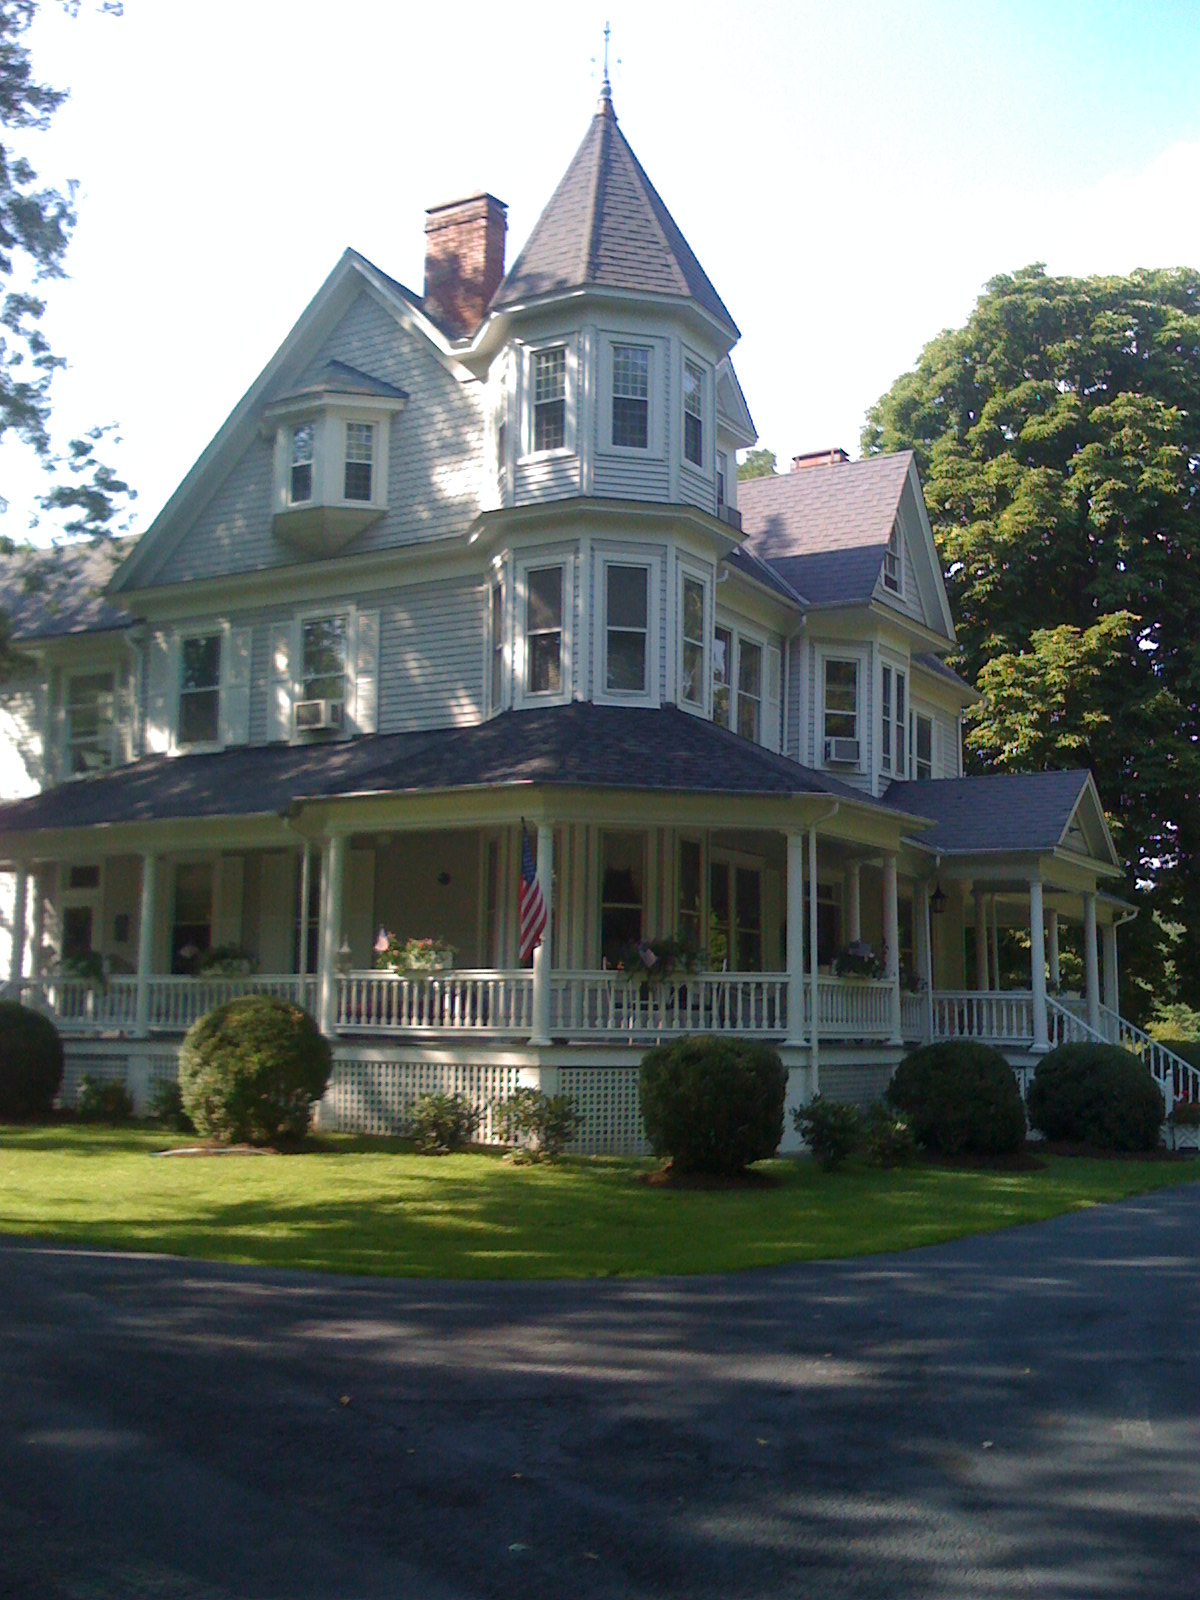 King's Victorian Inn Bed and Breakfast